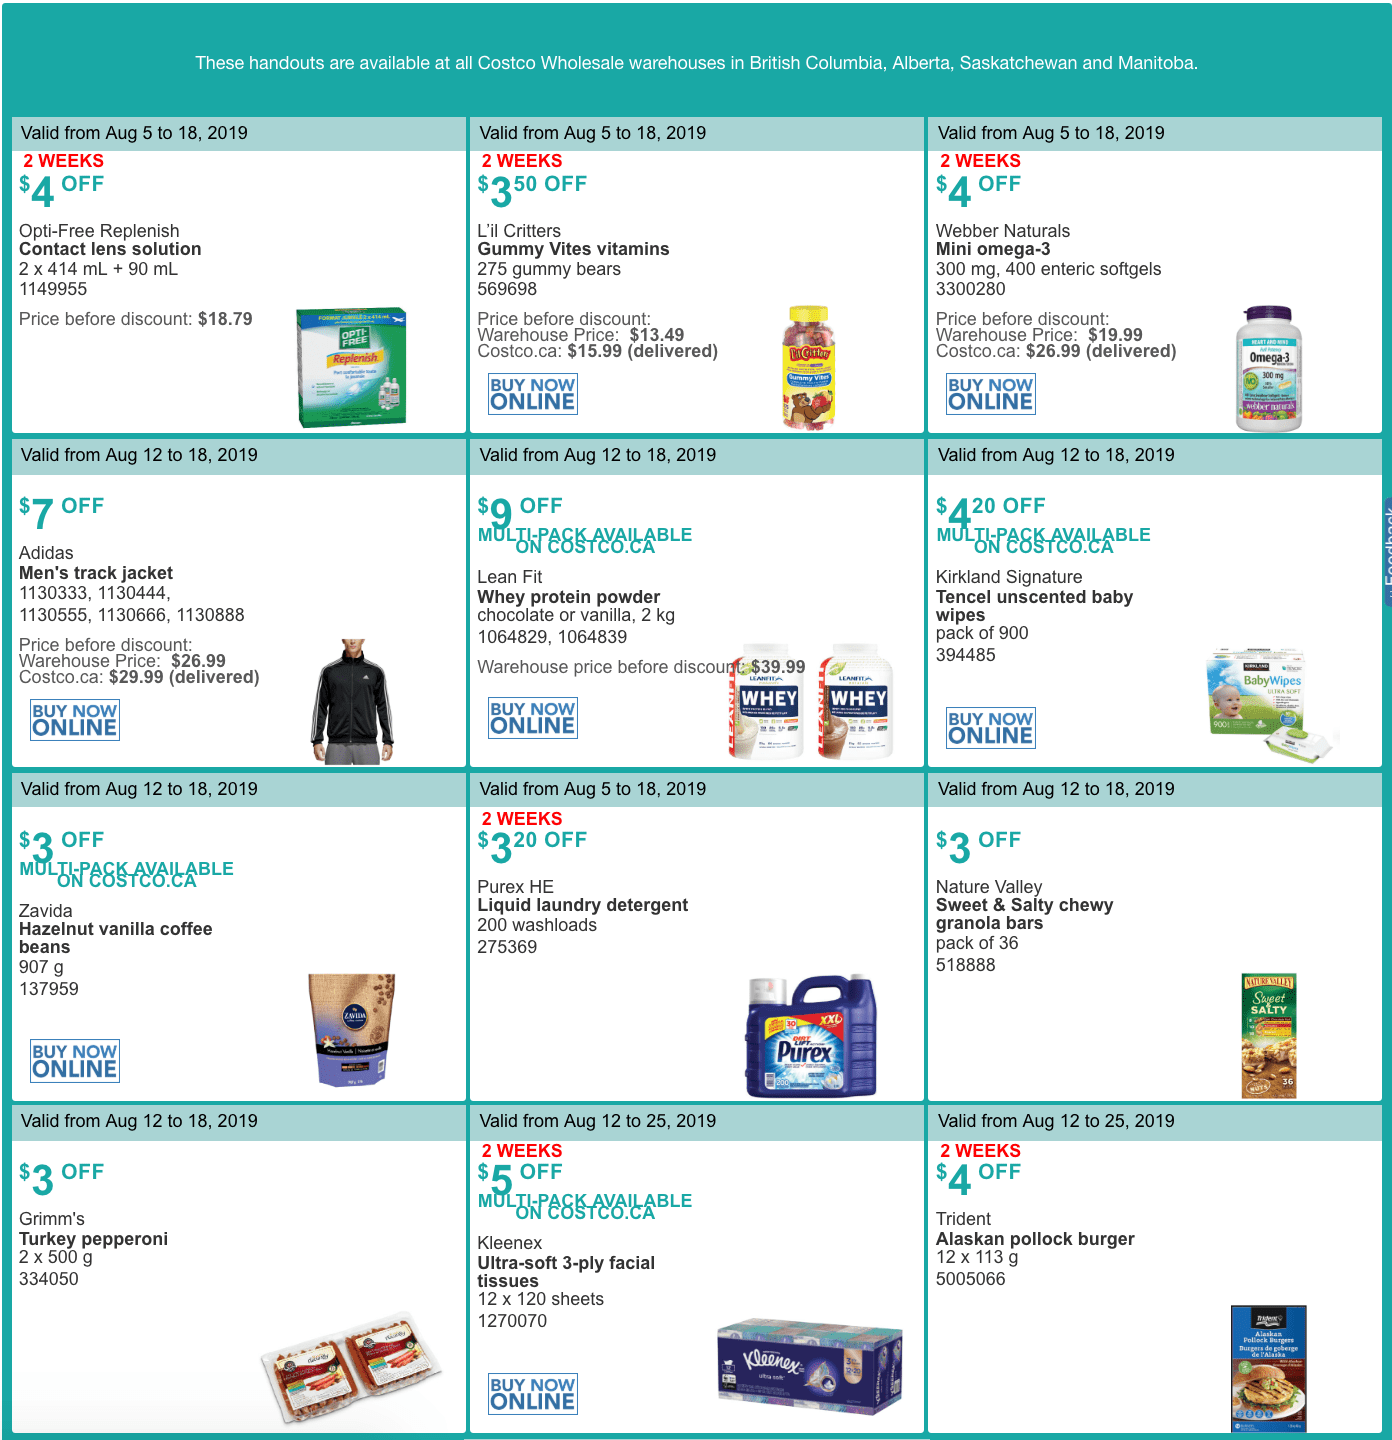 Canadian Freebies, Coupons, Deals, Bargains, Flyers, Contests Canada